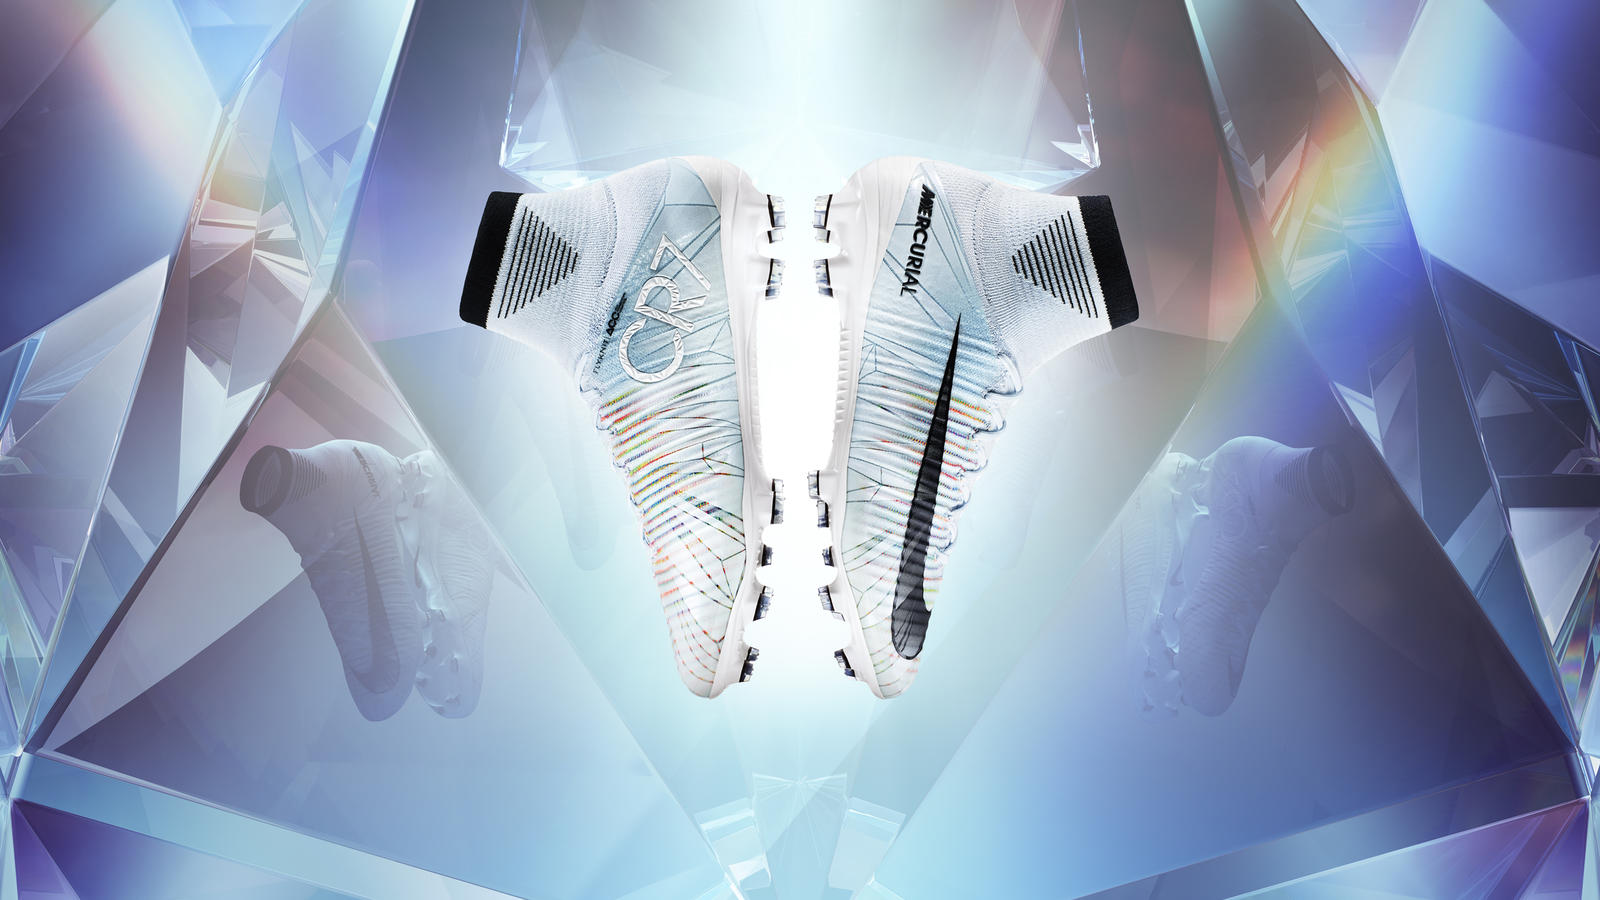 Cristiano Ronaldo's Unmatched Goal Scoring Inspires New Boots 19